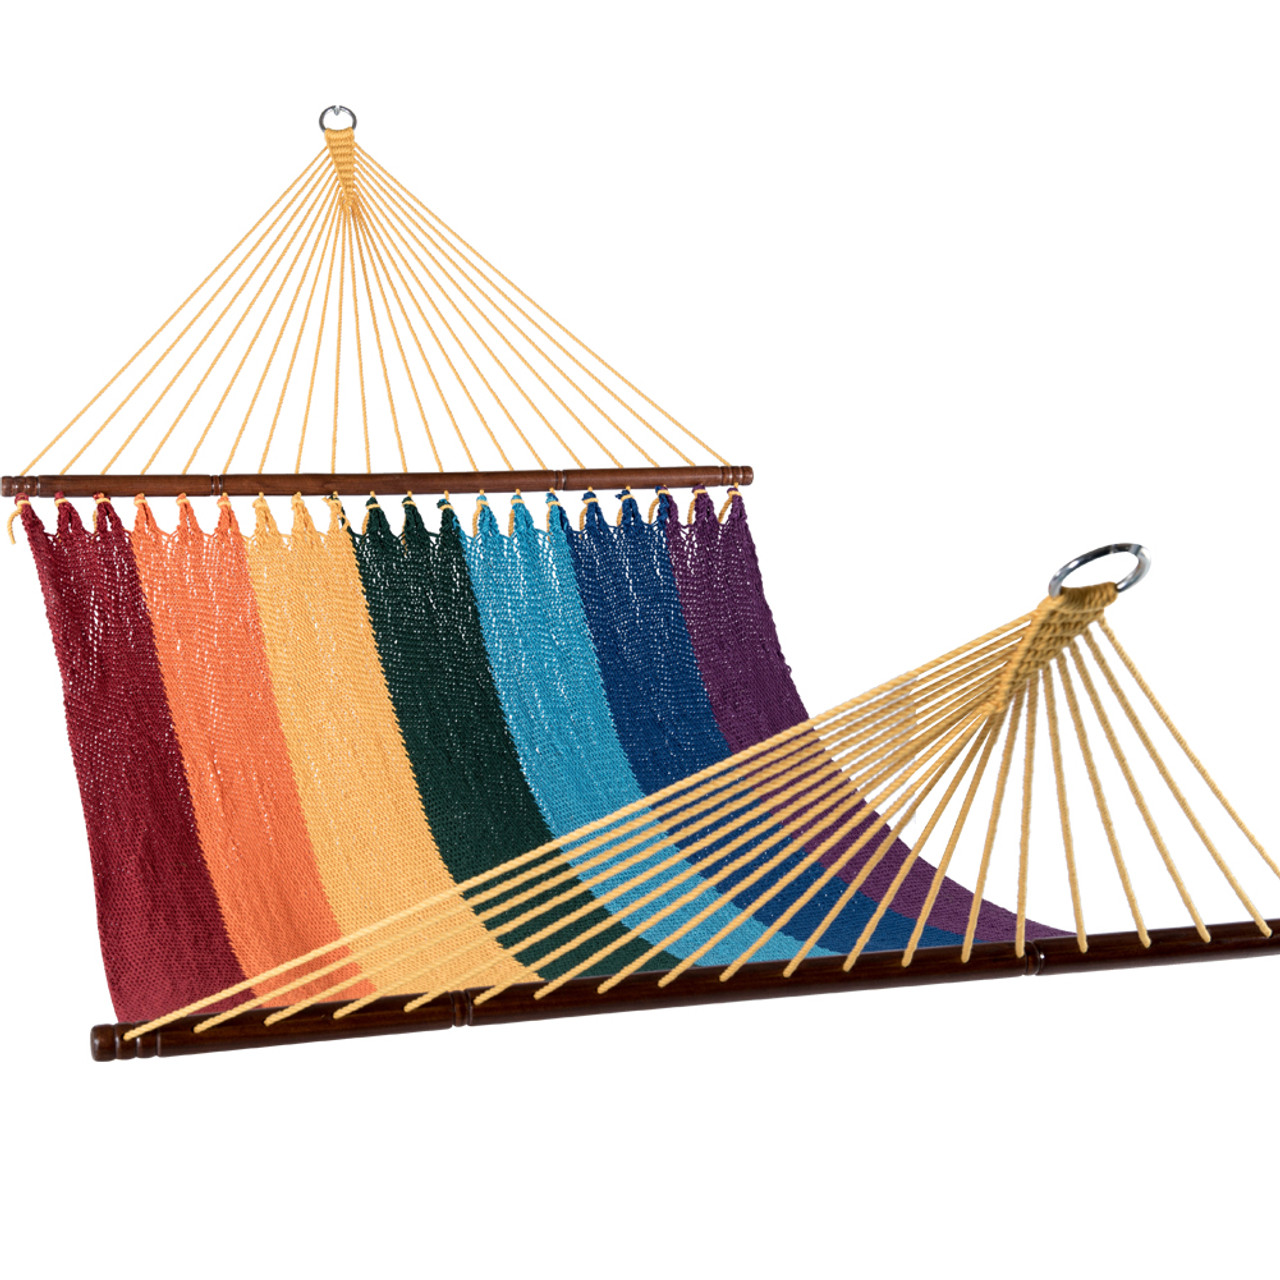 Double Caribbean Hammock Tight Weave Outdoor Poly Rope Swing Bed 55 Inch Rainbow